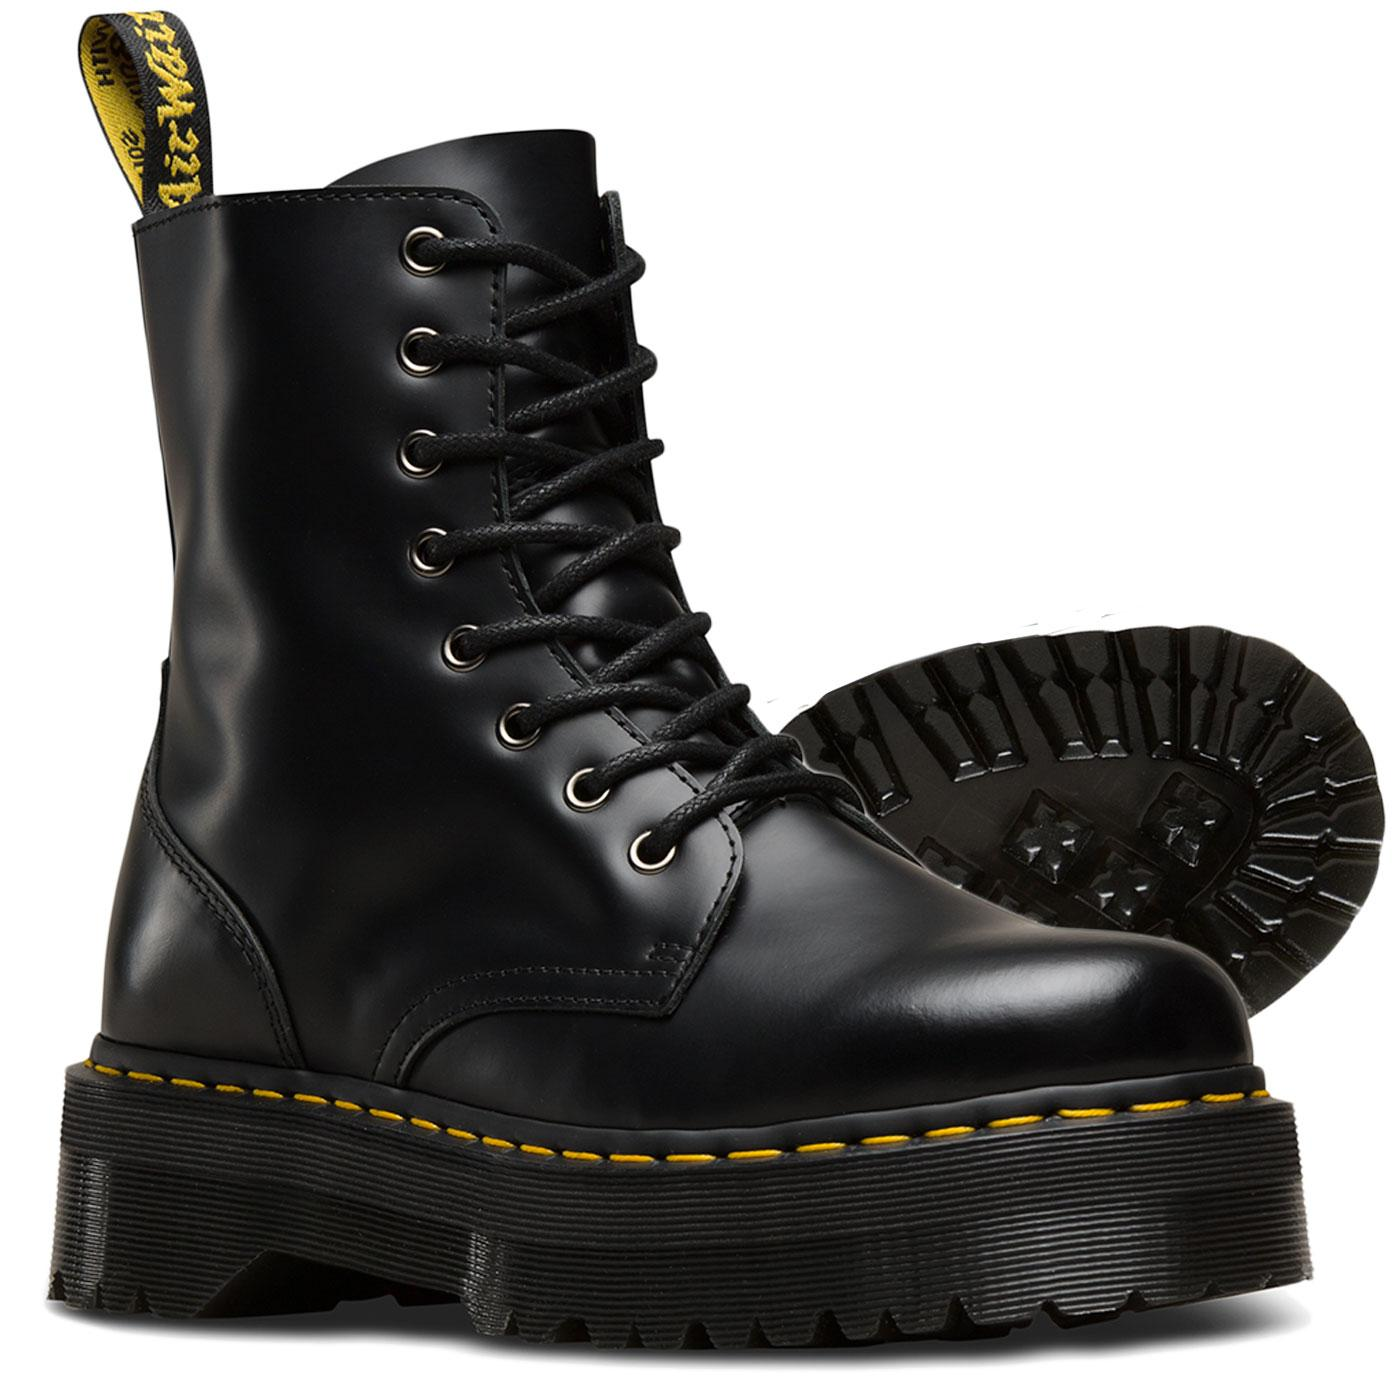 DR MARTENS 8 Eye Jadon Black 15265001 Original Classic